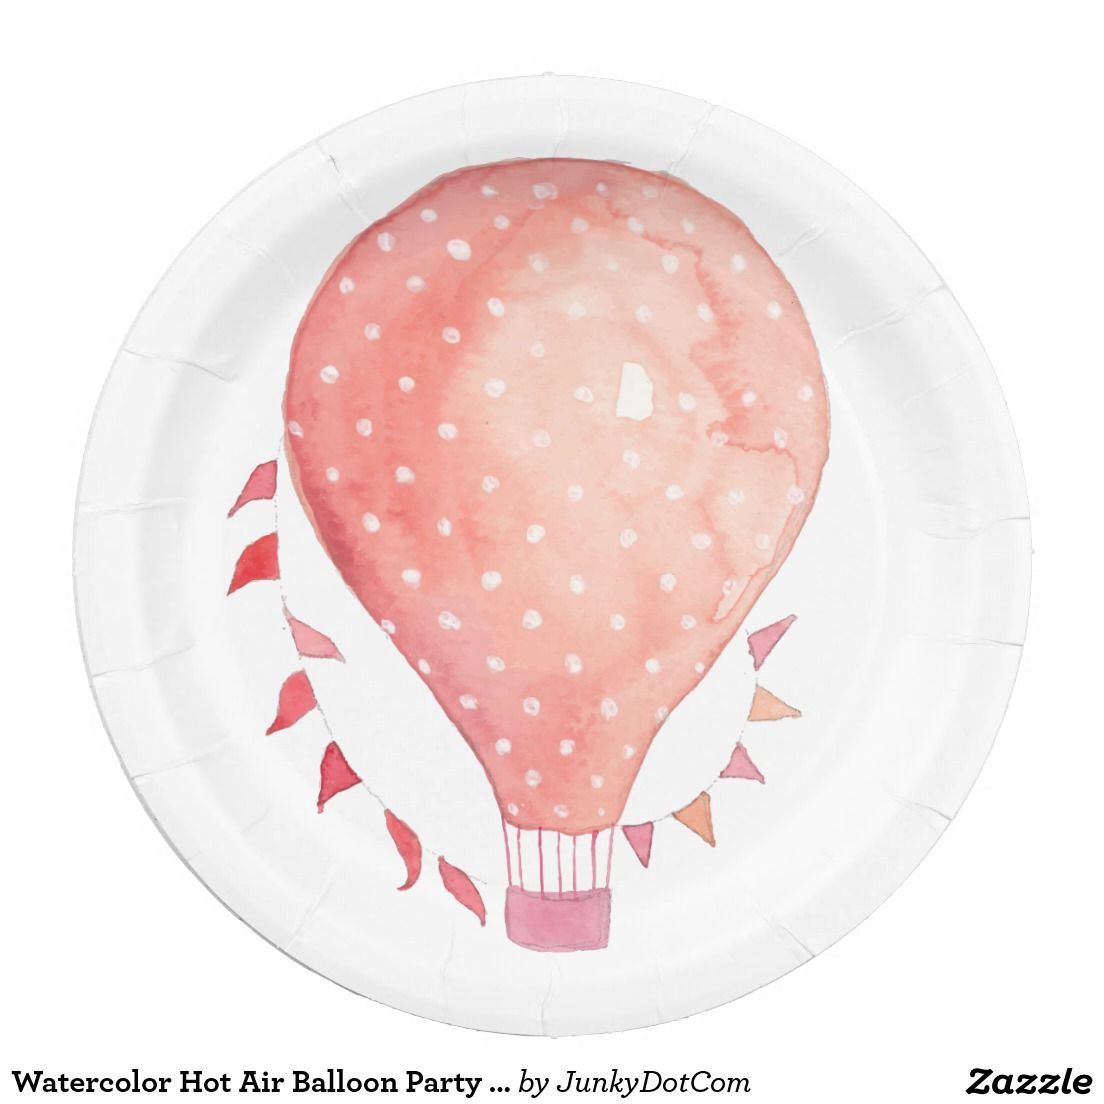 Watercolor Hot Air Balloon Party Peach Paper Plate @zazzle #junkydotcom Aug 21 2016 16x  sc 1 st  Pinterest & Watercolor Hot Air Balloon Party Peach Paper Plate @zazzle ...